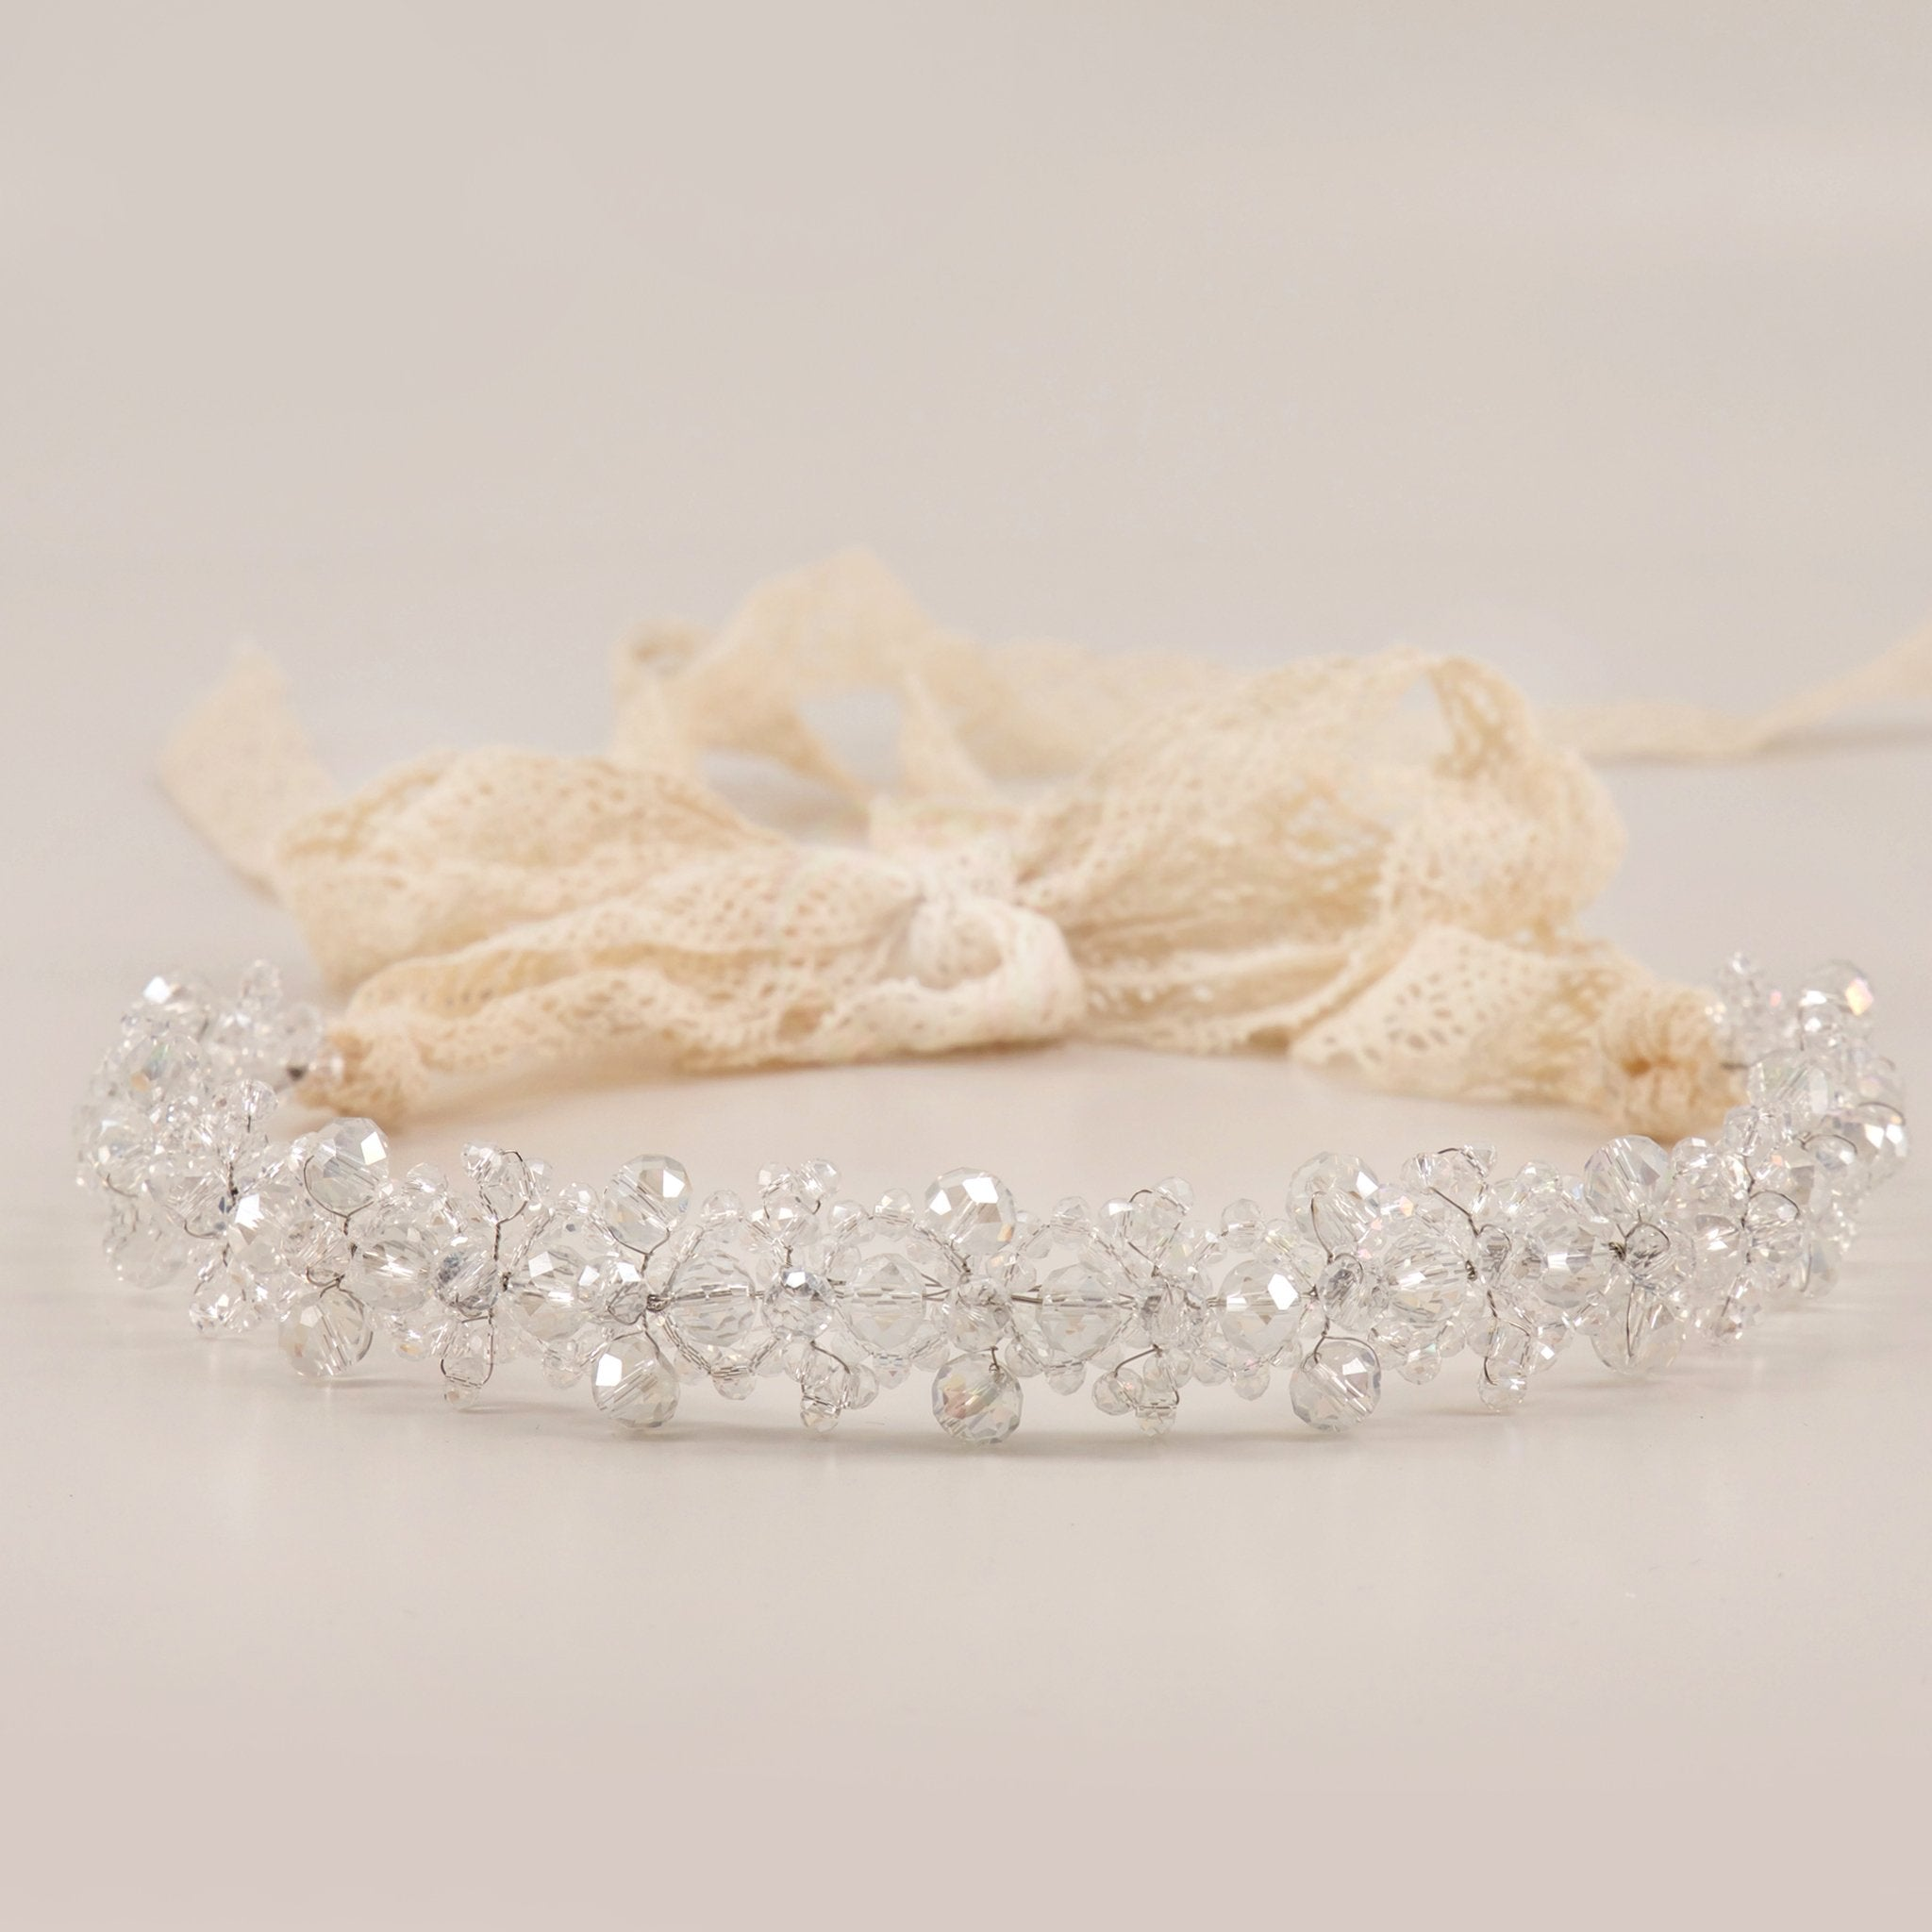 The Chiara Crystal Luxury Girls Hair Garland garland Sienna Likes To Party